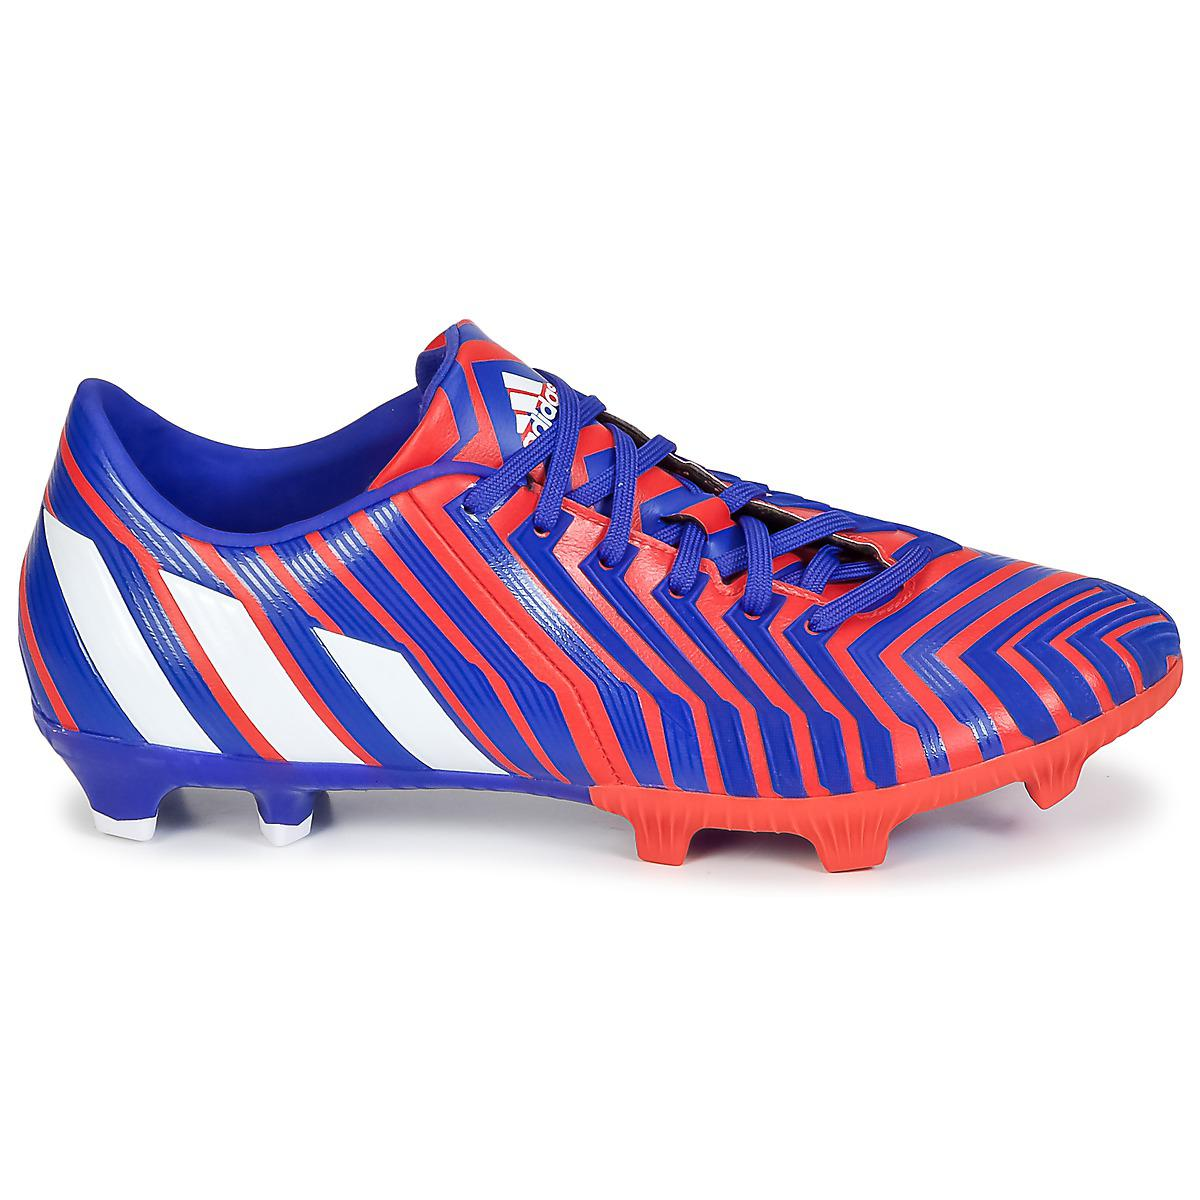 low priced 5ae0a ac155 Adidas - Blue P Absolion Instinct Fg Football Boots for Men - Lyst. View  fullscreen